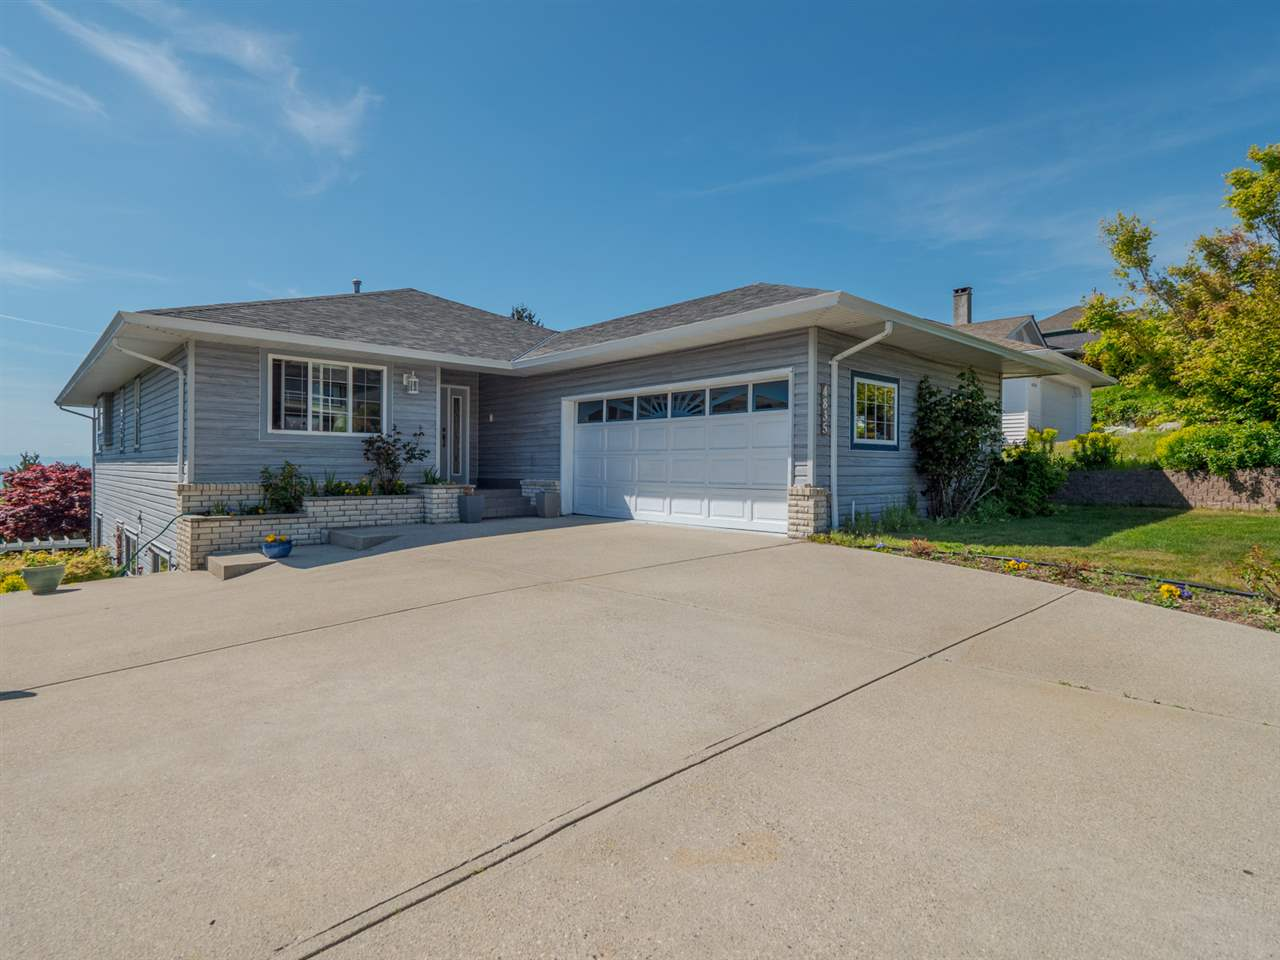 4835 BLUEGROUSE DRIVE - MLS® # R2371182